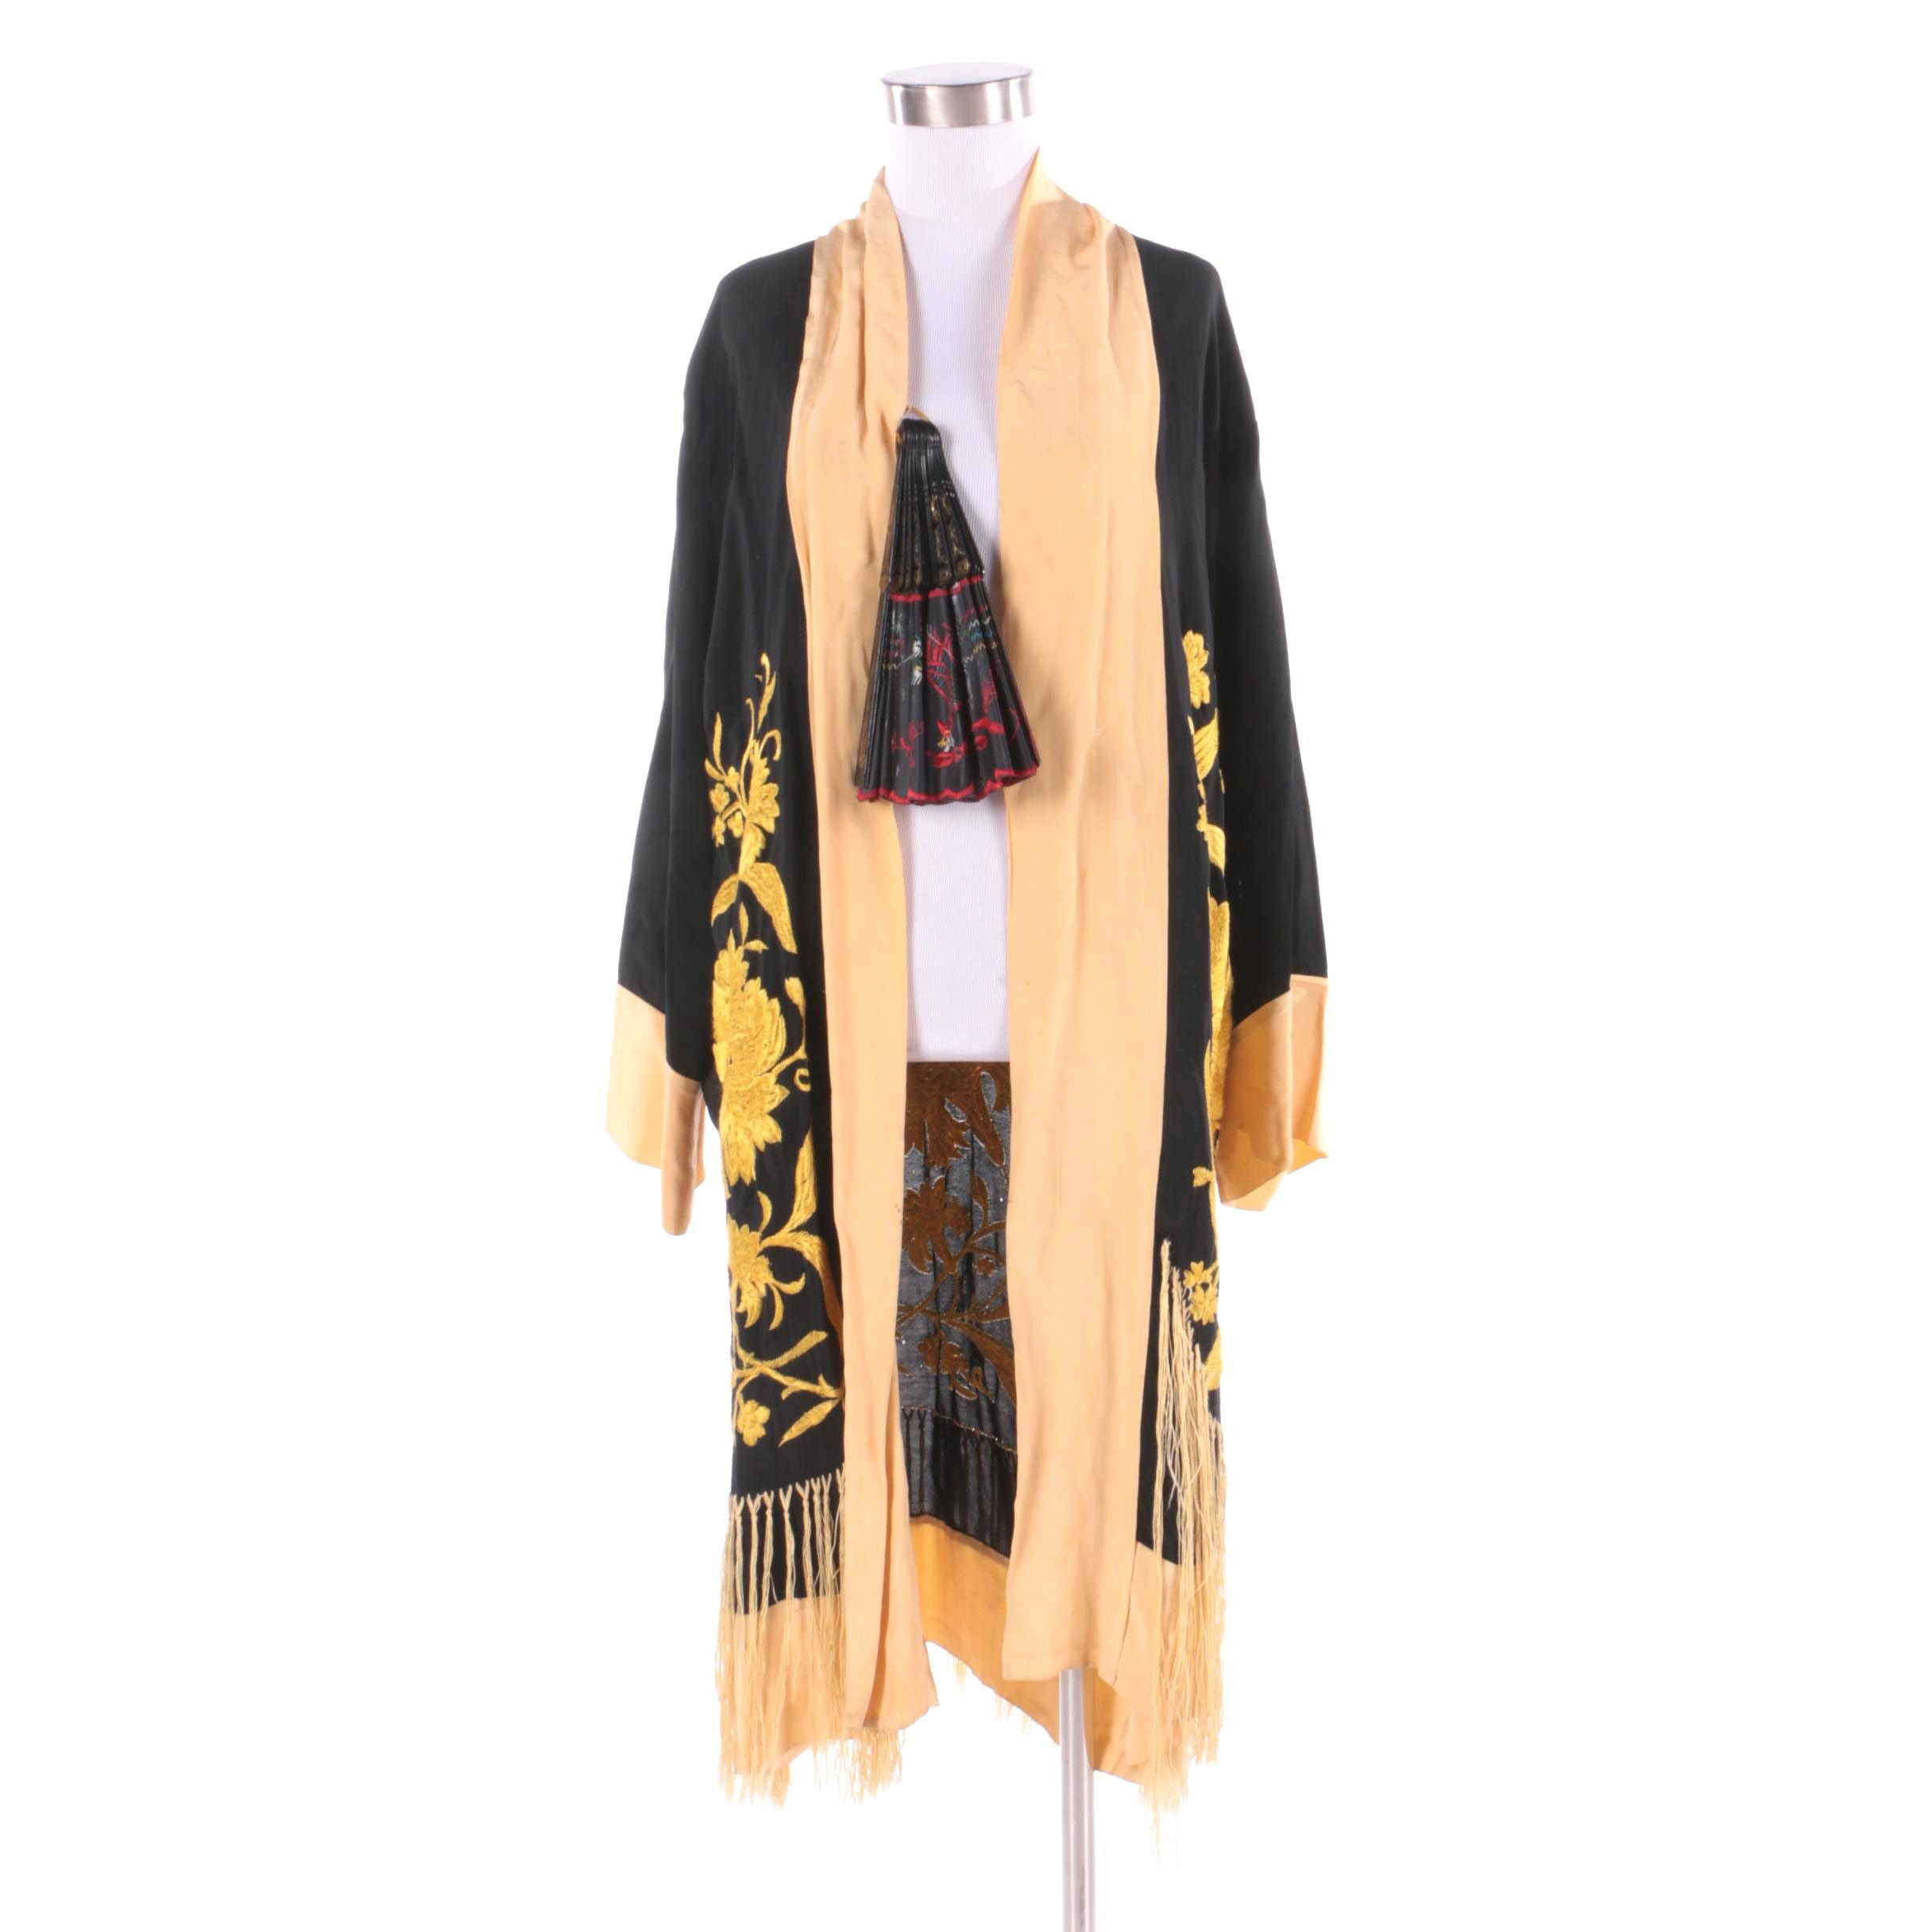 Women's Vintage Asian Inspired Silk Embroidered Fringed Jacket and Handheld Fan